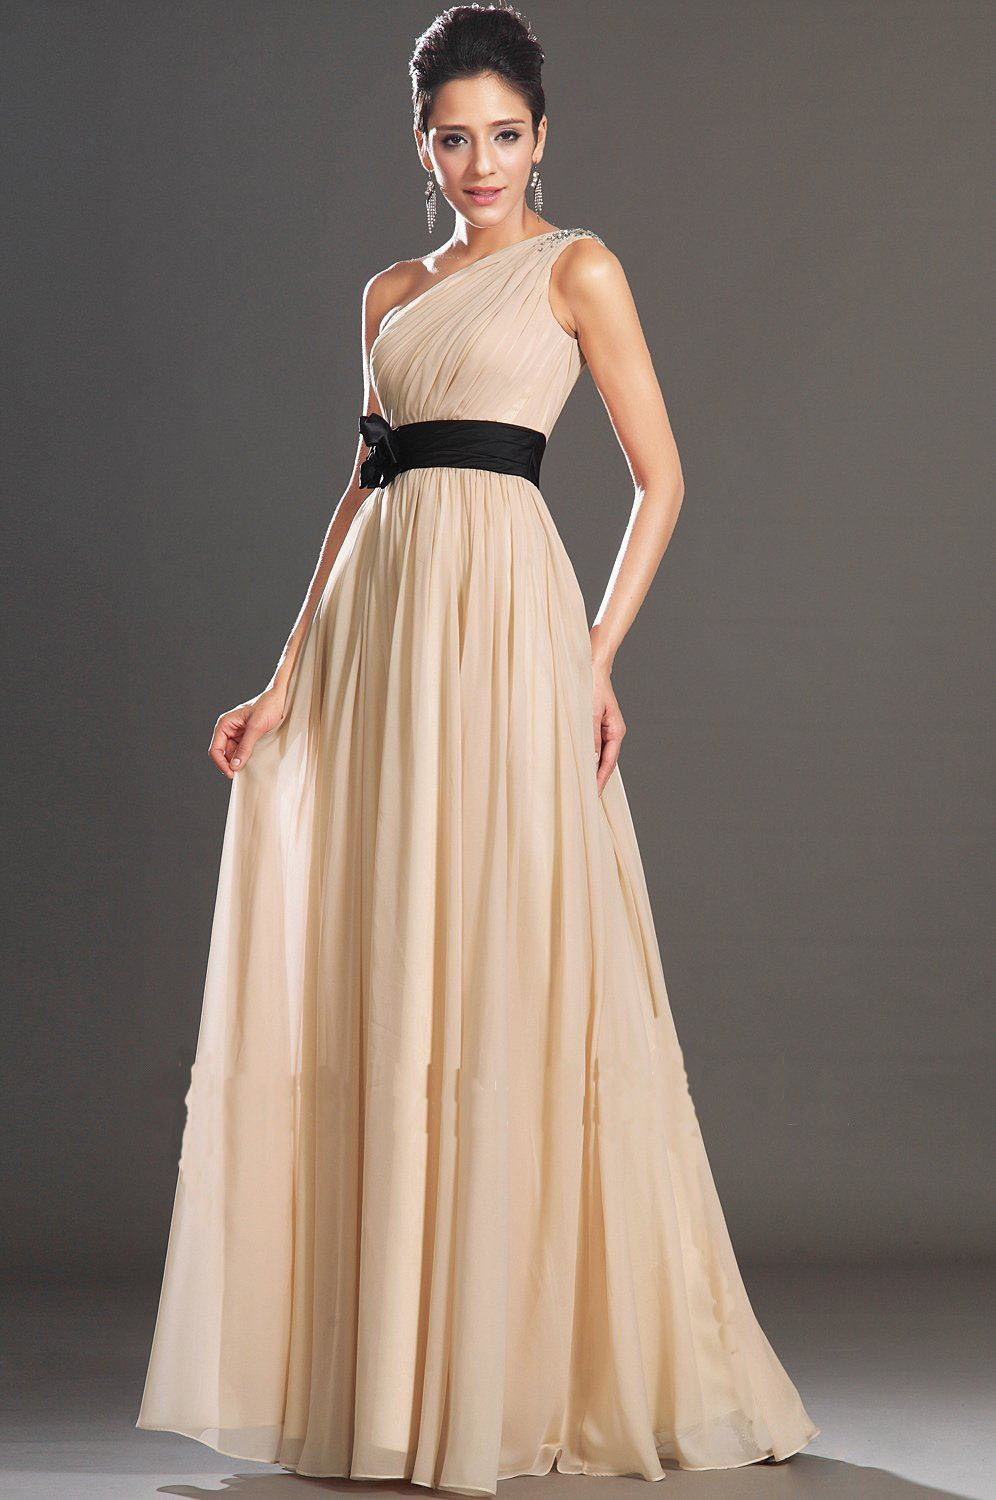 Compare prices on one shoulder prom dresses under 100 online abendkleid cheap chiffon one shoulder flower bridesmaid dresses under 100 floor length prom party gowns women ombrellifo Image collections